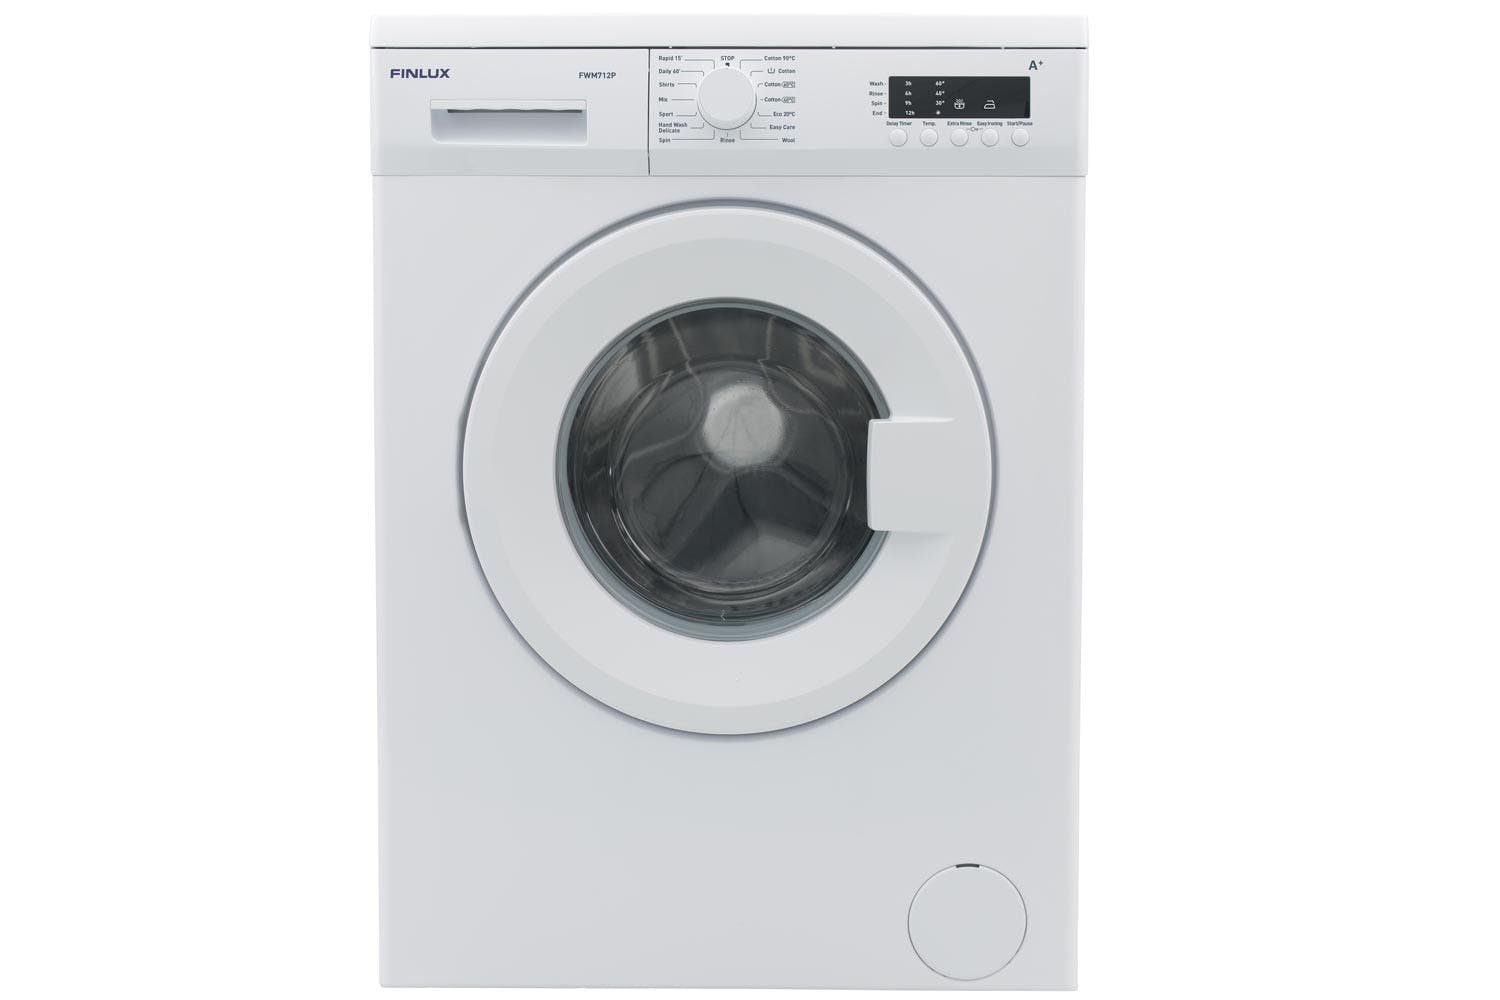 Washing Machines Your Machine Superstore Ireland Twin Tub Wiring Diagram Finlux 7kg Fwm712p